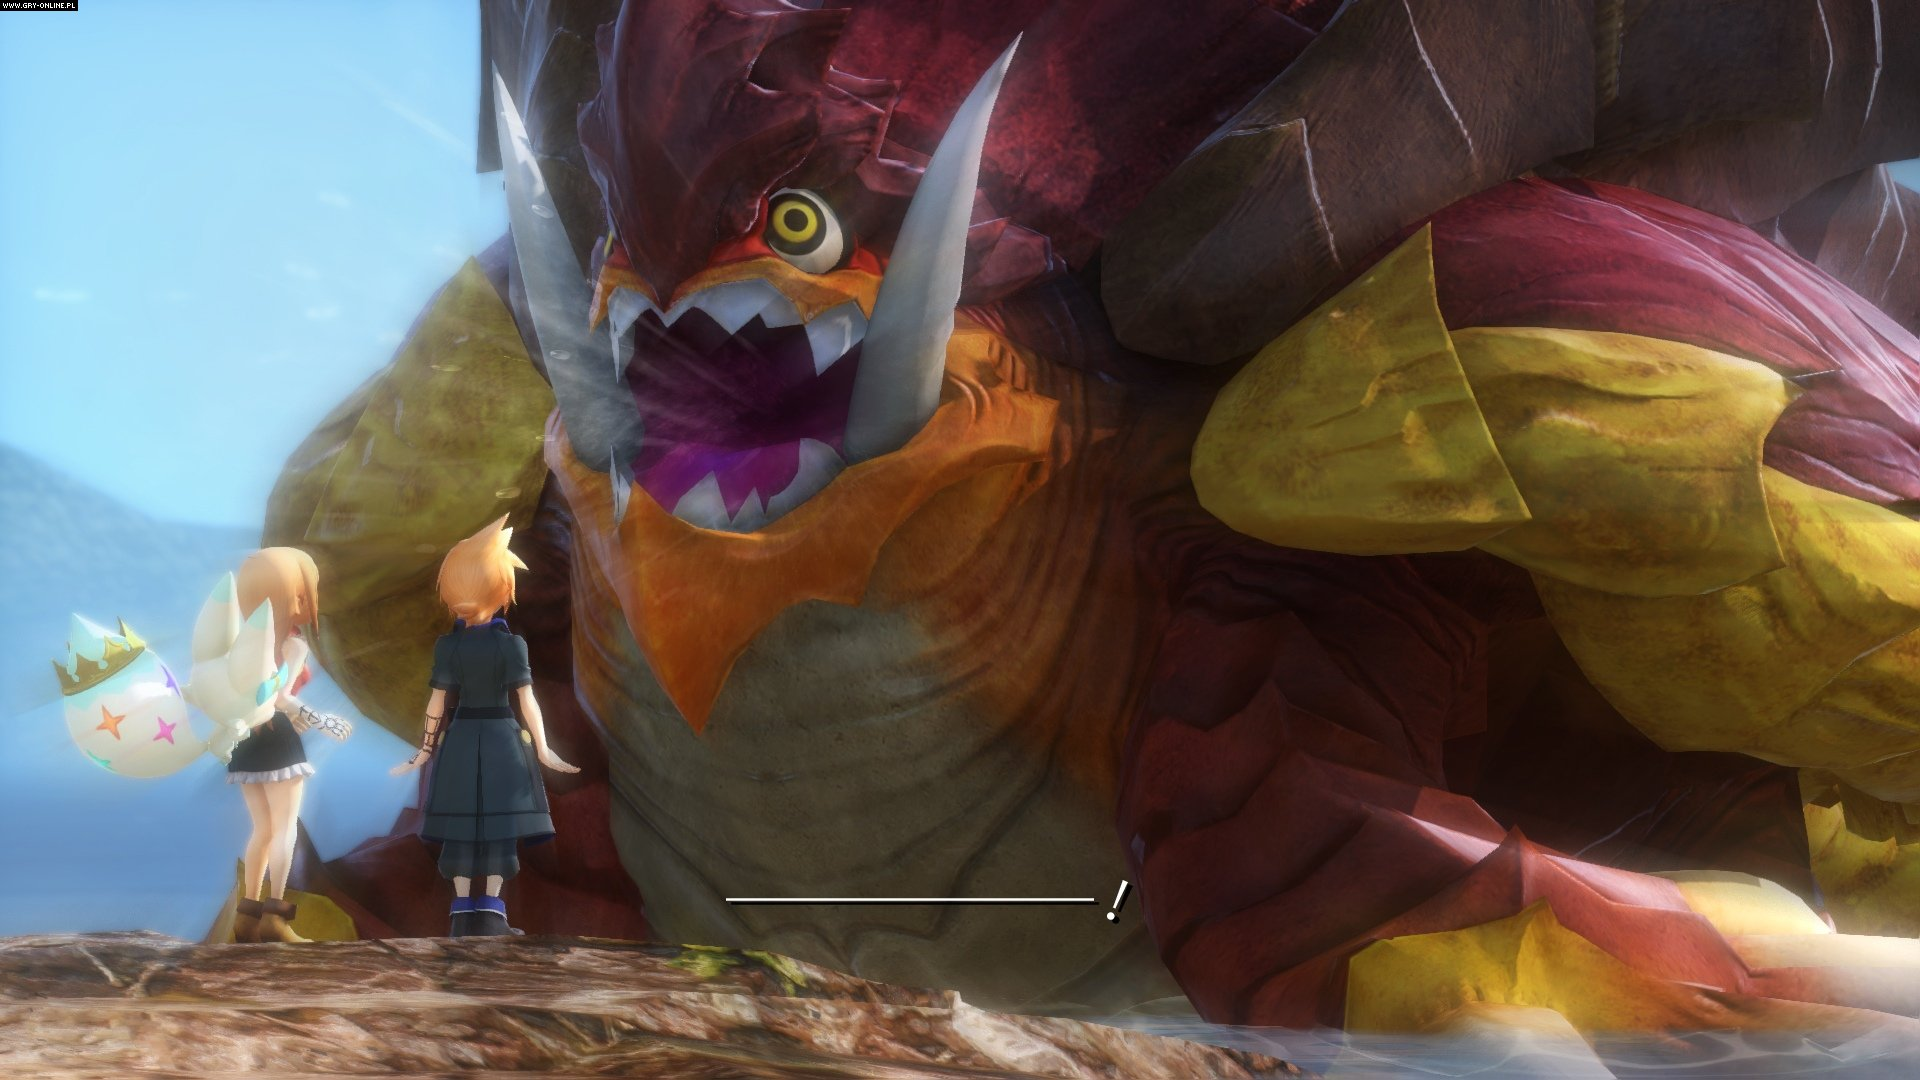 World of Final Fantasy PC, PSV, PS4 Gry Screen 8/161, Square-Enix / Eidos